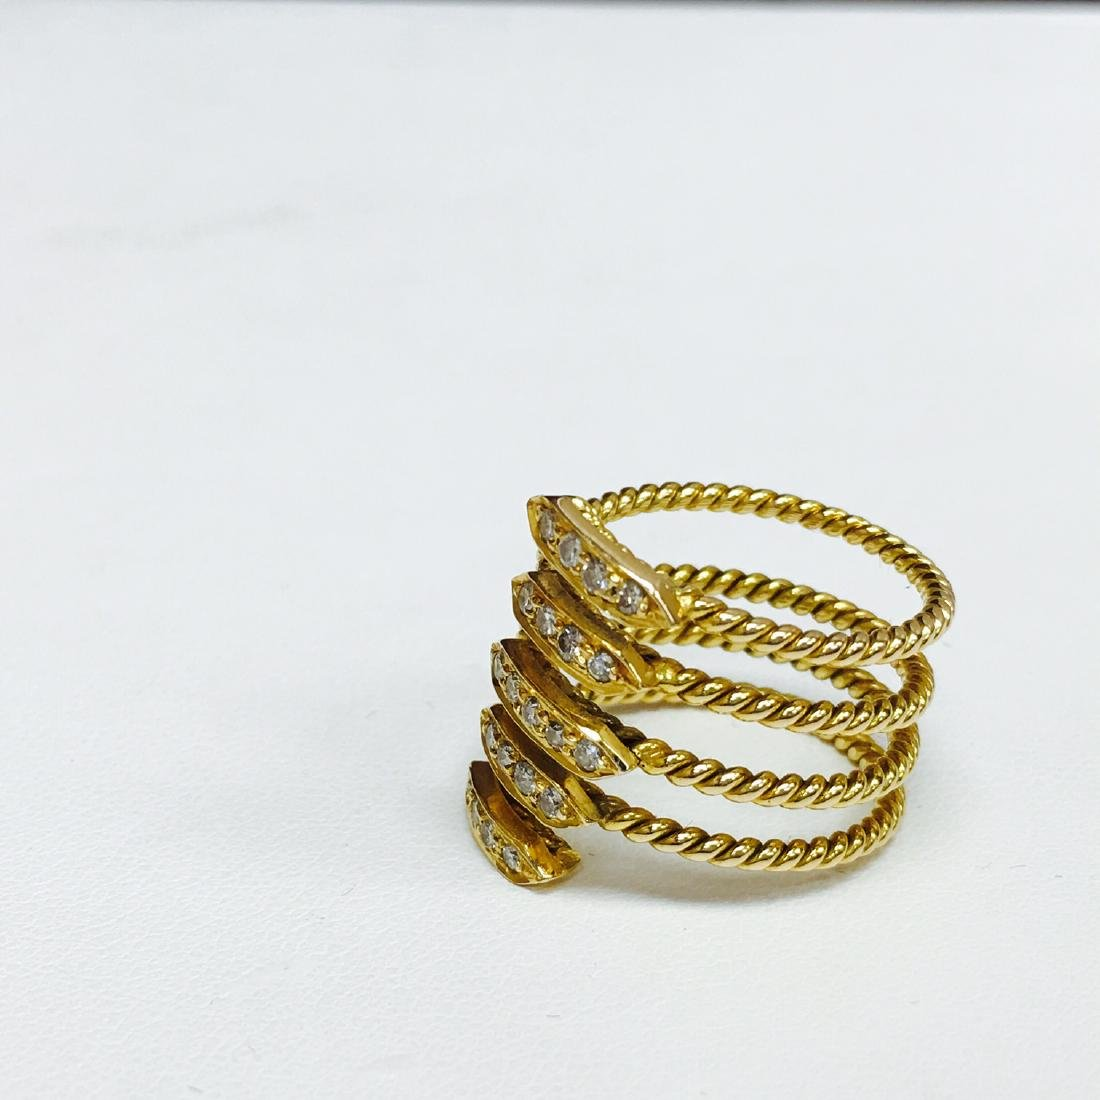 VVS Diamonds, 18K Yellow Gold Coil Design Ring - 3